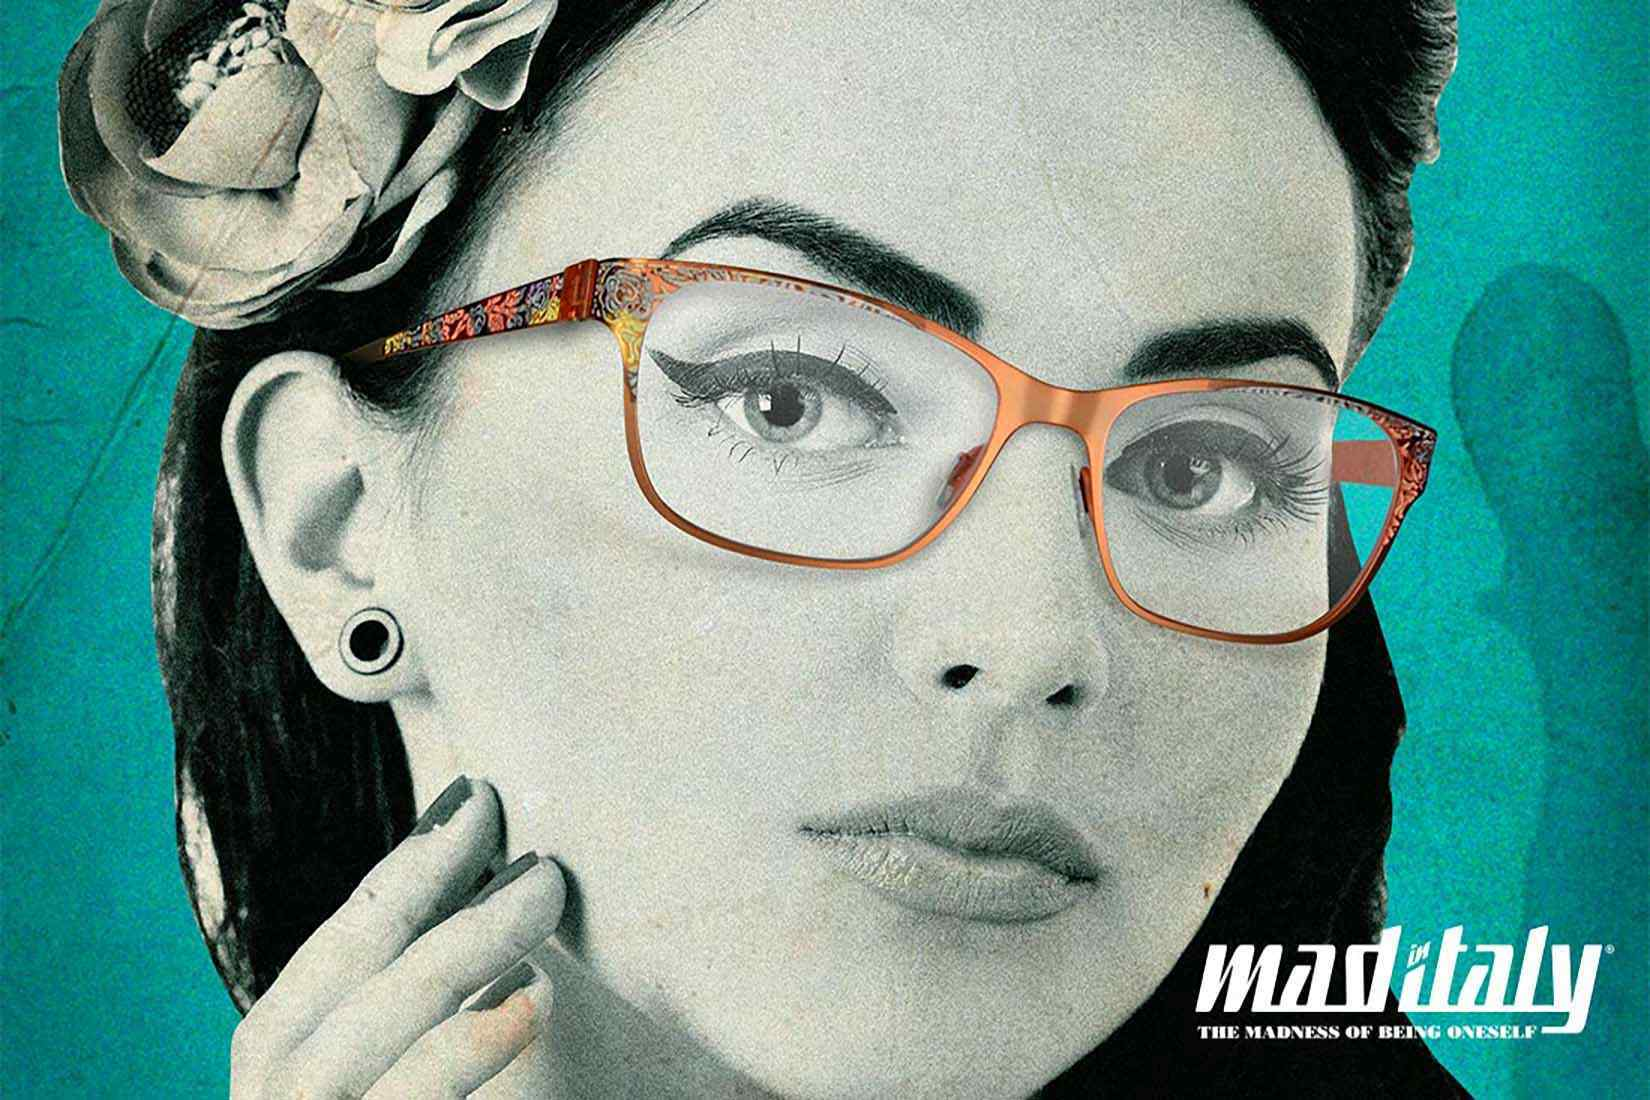 Mad-In-Italy spectacles: poster face